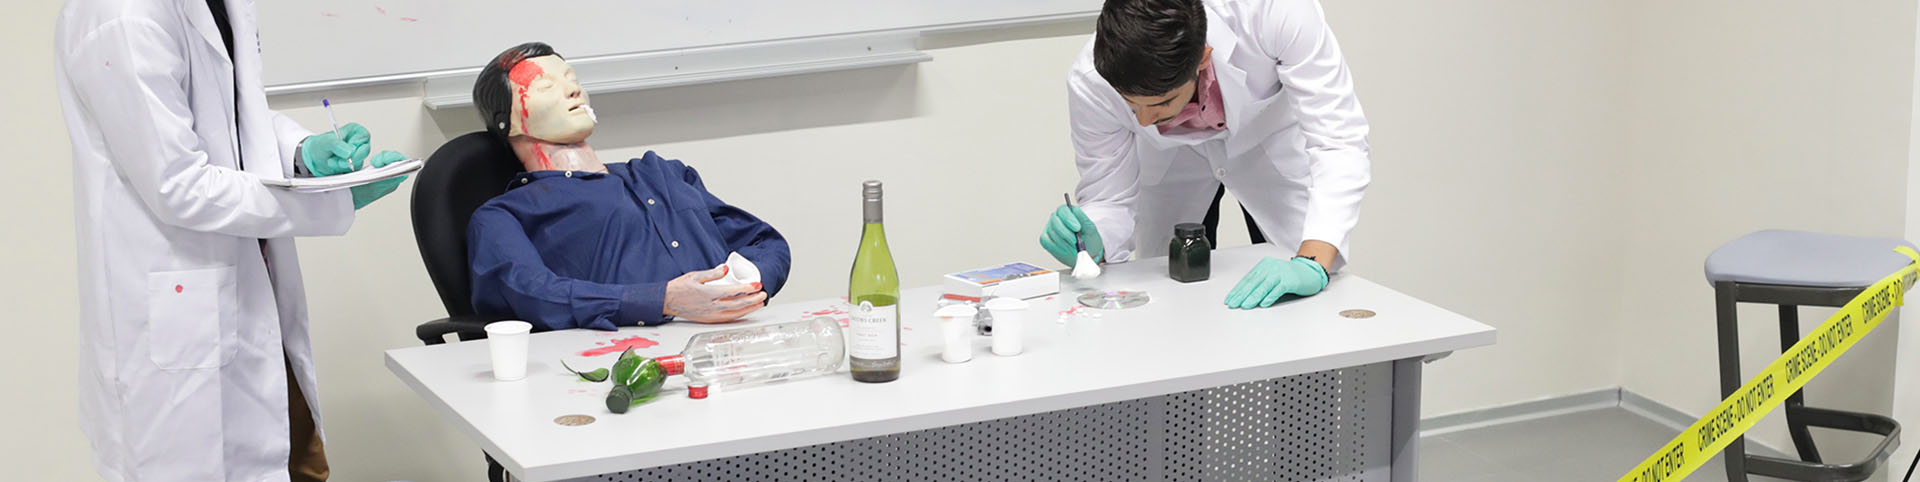 Bachelor of Science (Honours) Forensic Sciences